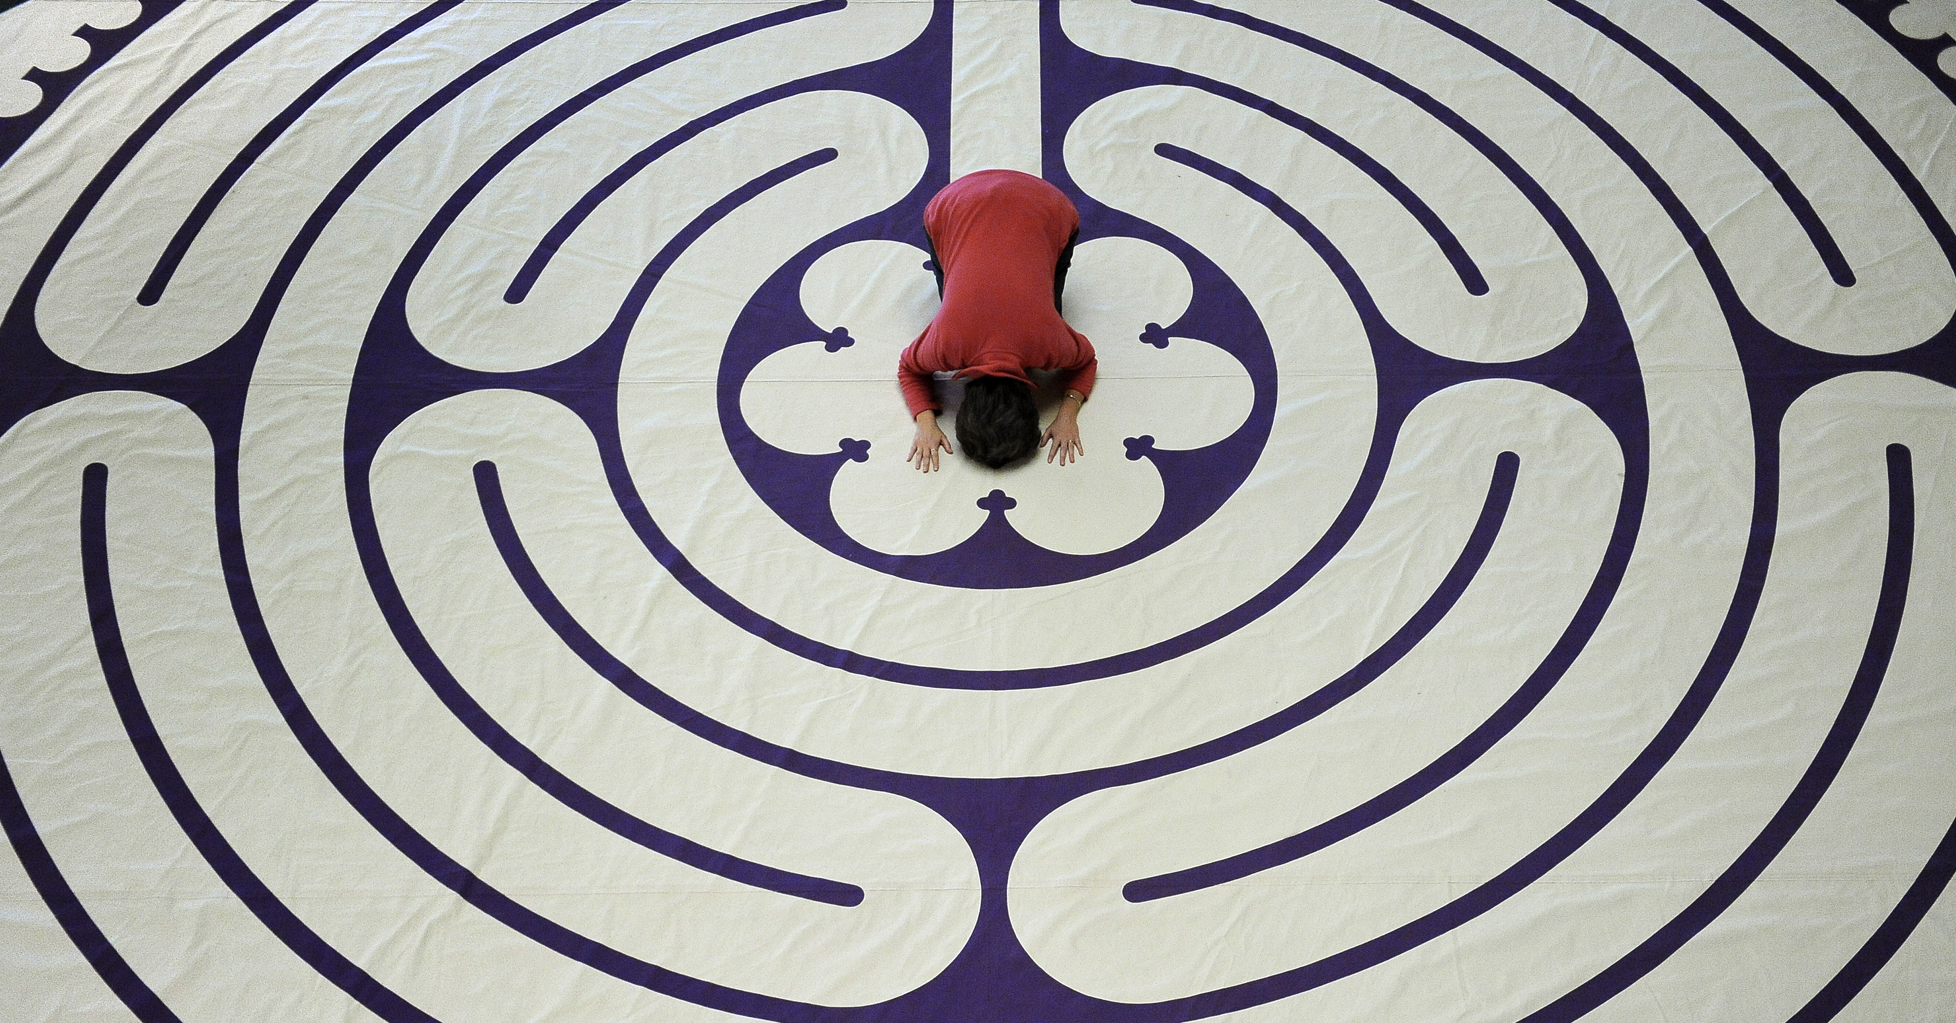 labyrinth_central_high res_cropped_1